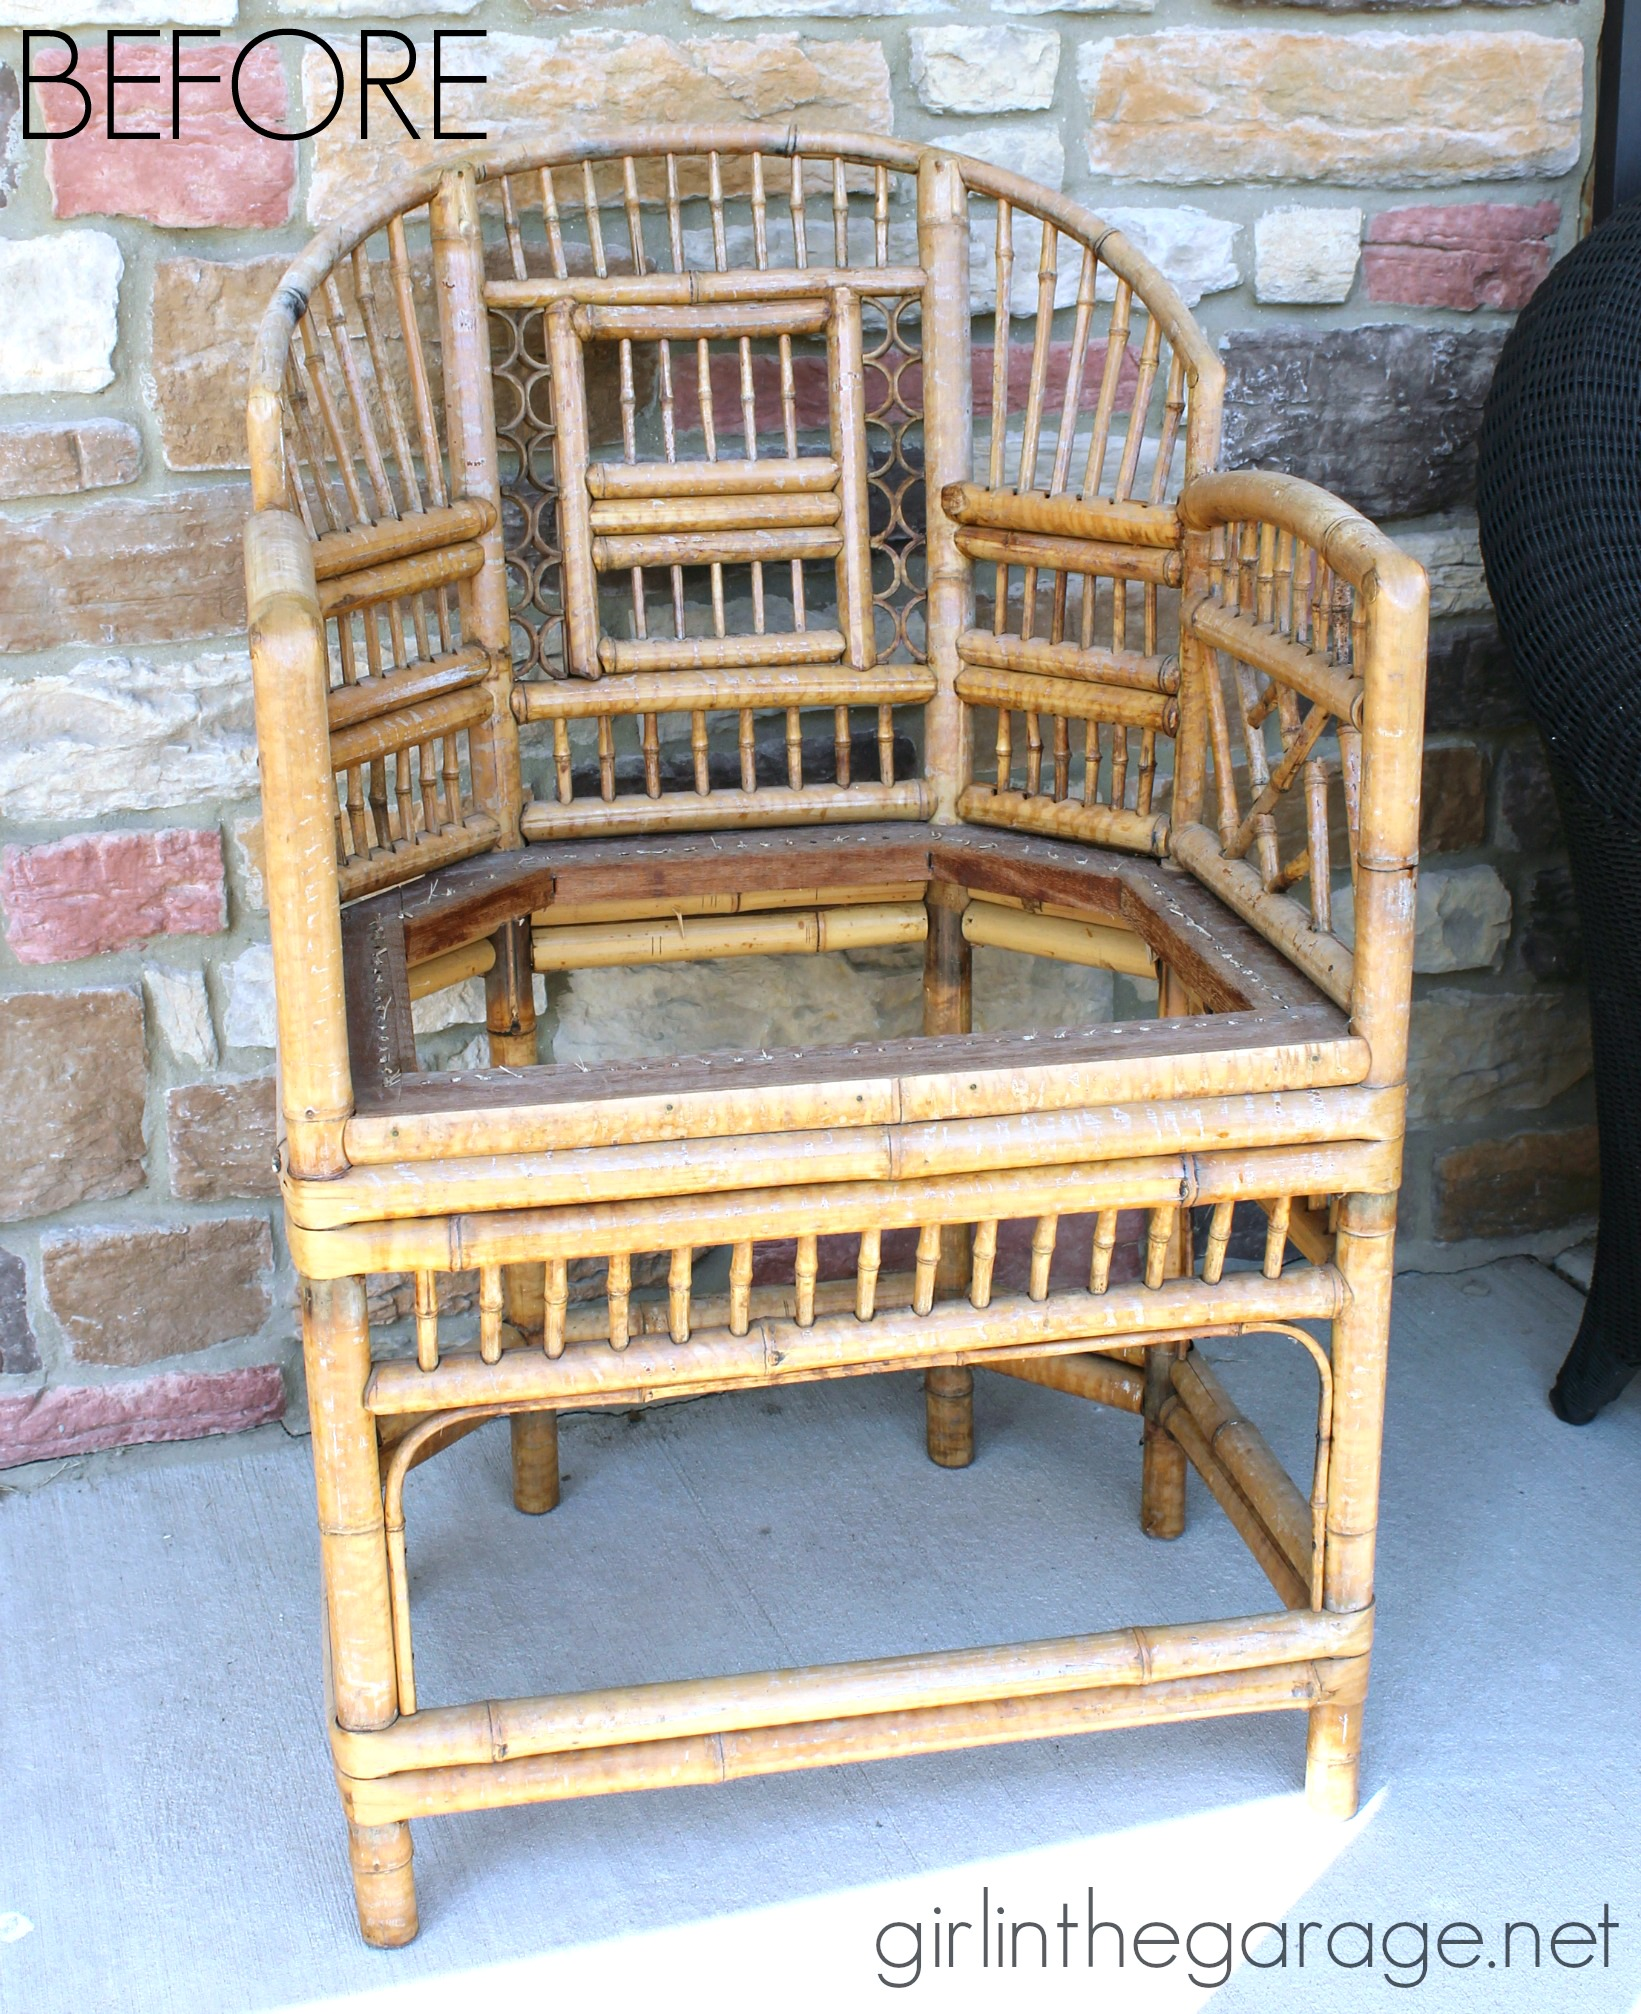 The Bamboo Chair How to Make a New Seat